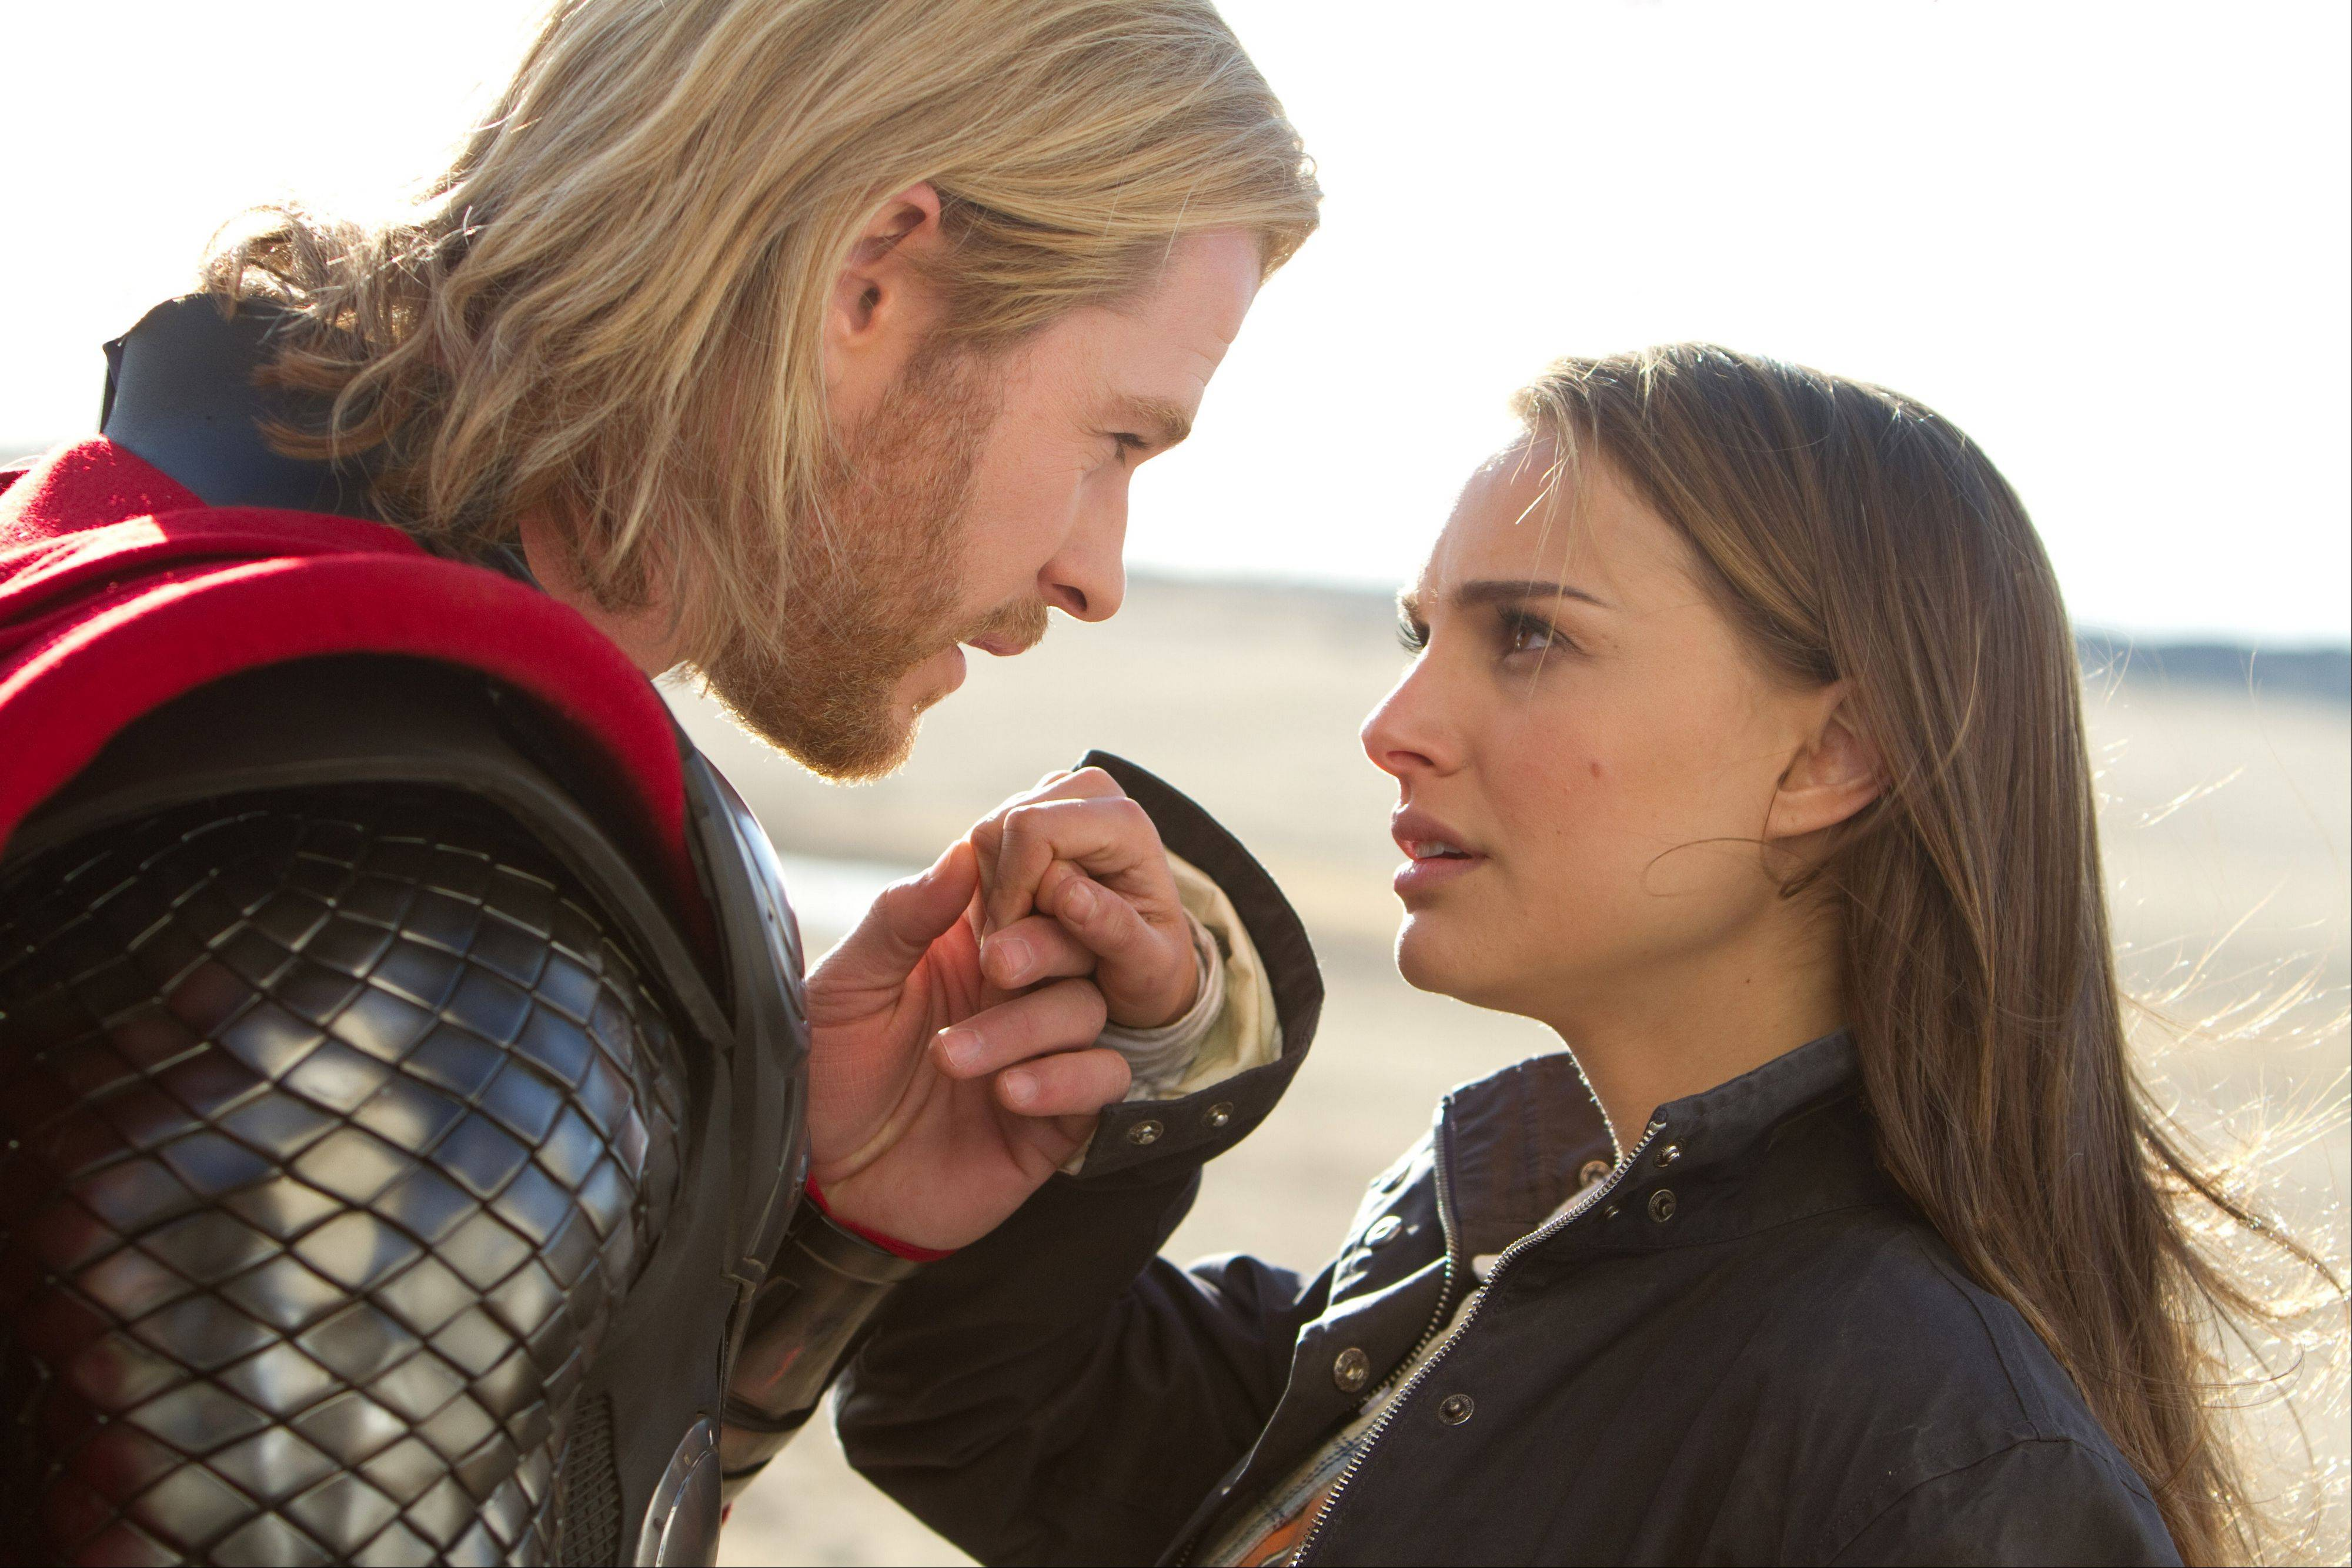 Chris Hemsworth, portraying superhero Thor, and Natalie Portman, portraying Jane Foster, in a scene from the film, �Thor.�